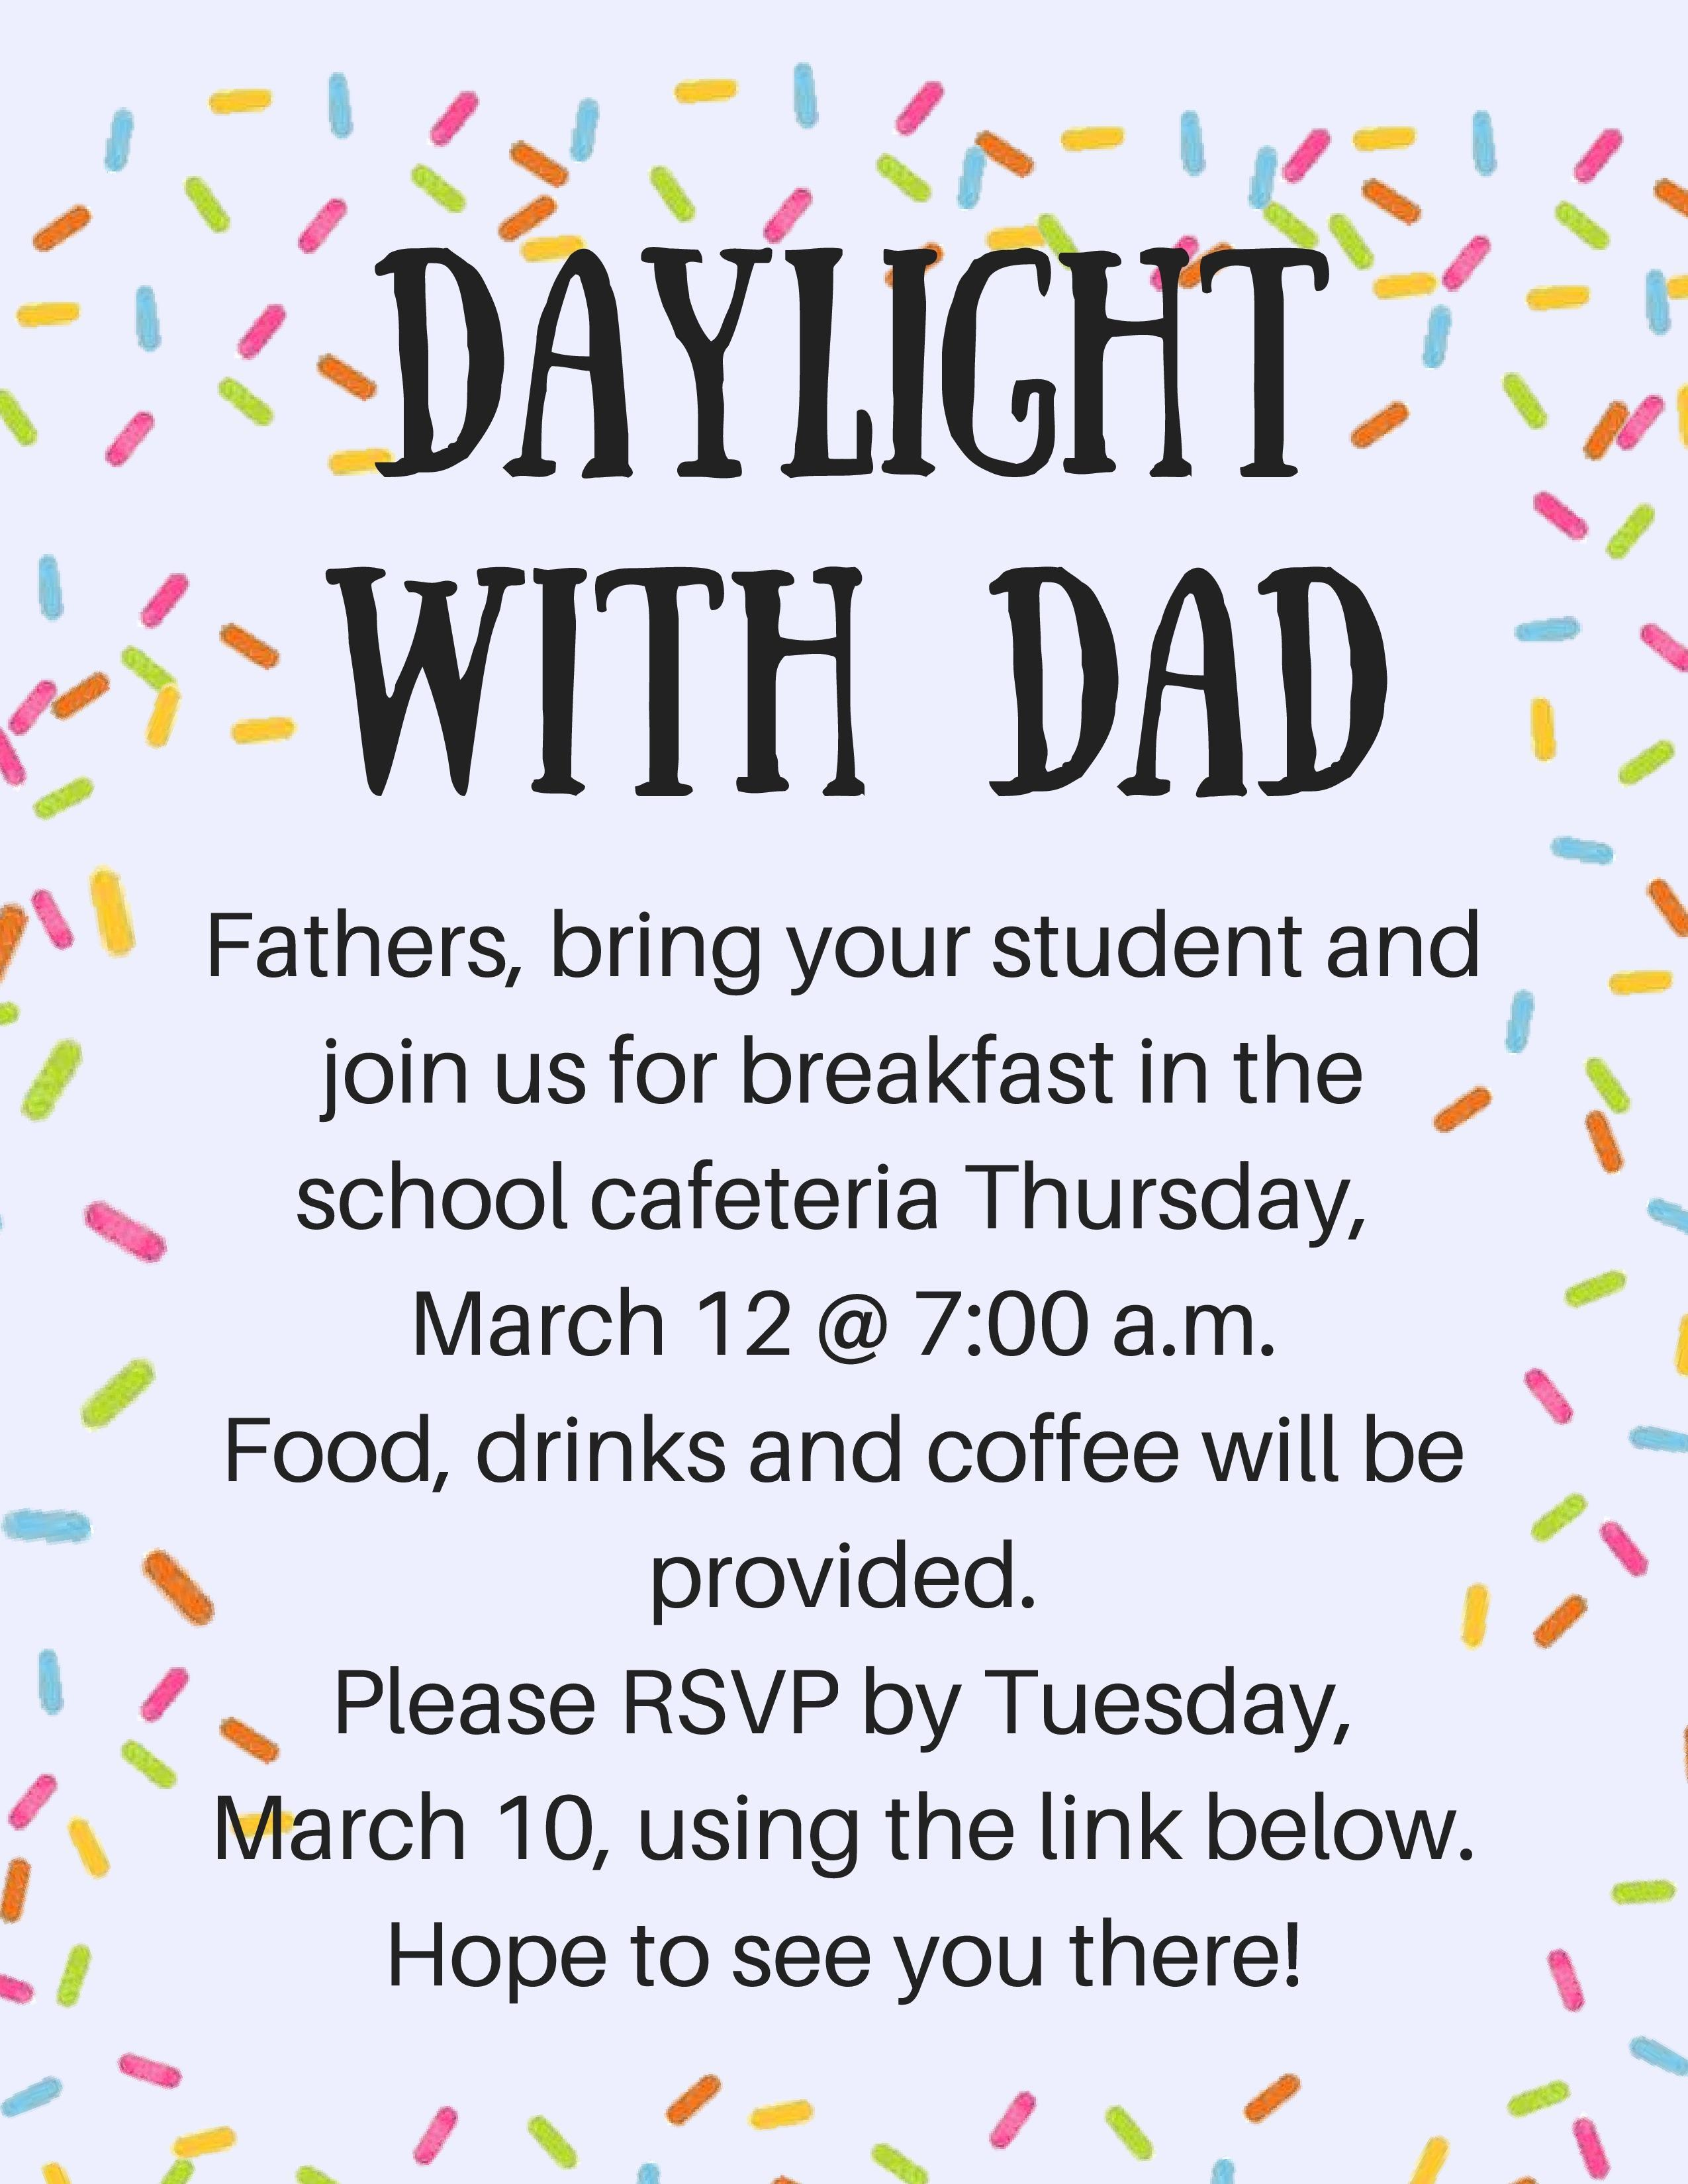 Sign Up for Daylights with Dads at https://www.signupgenius.com/go/20f0f4cadad2da0ff2-daylight3